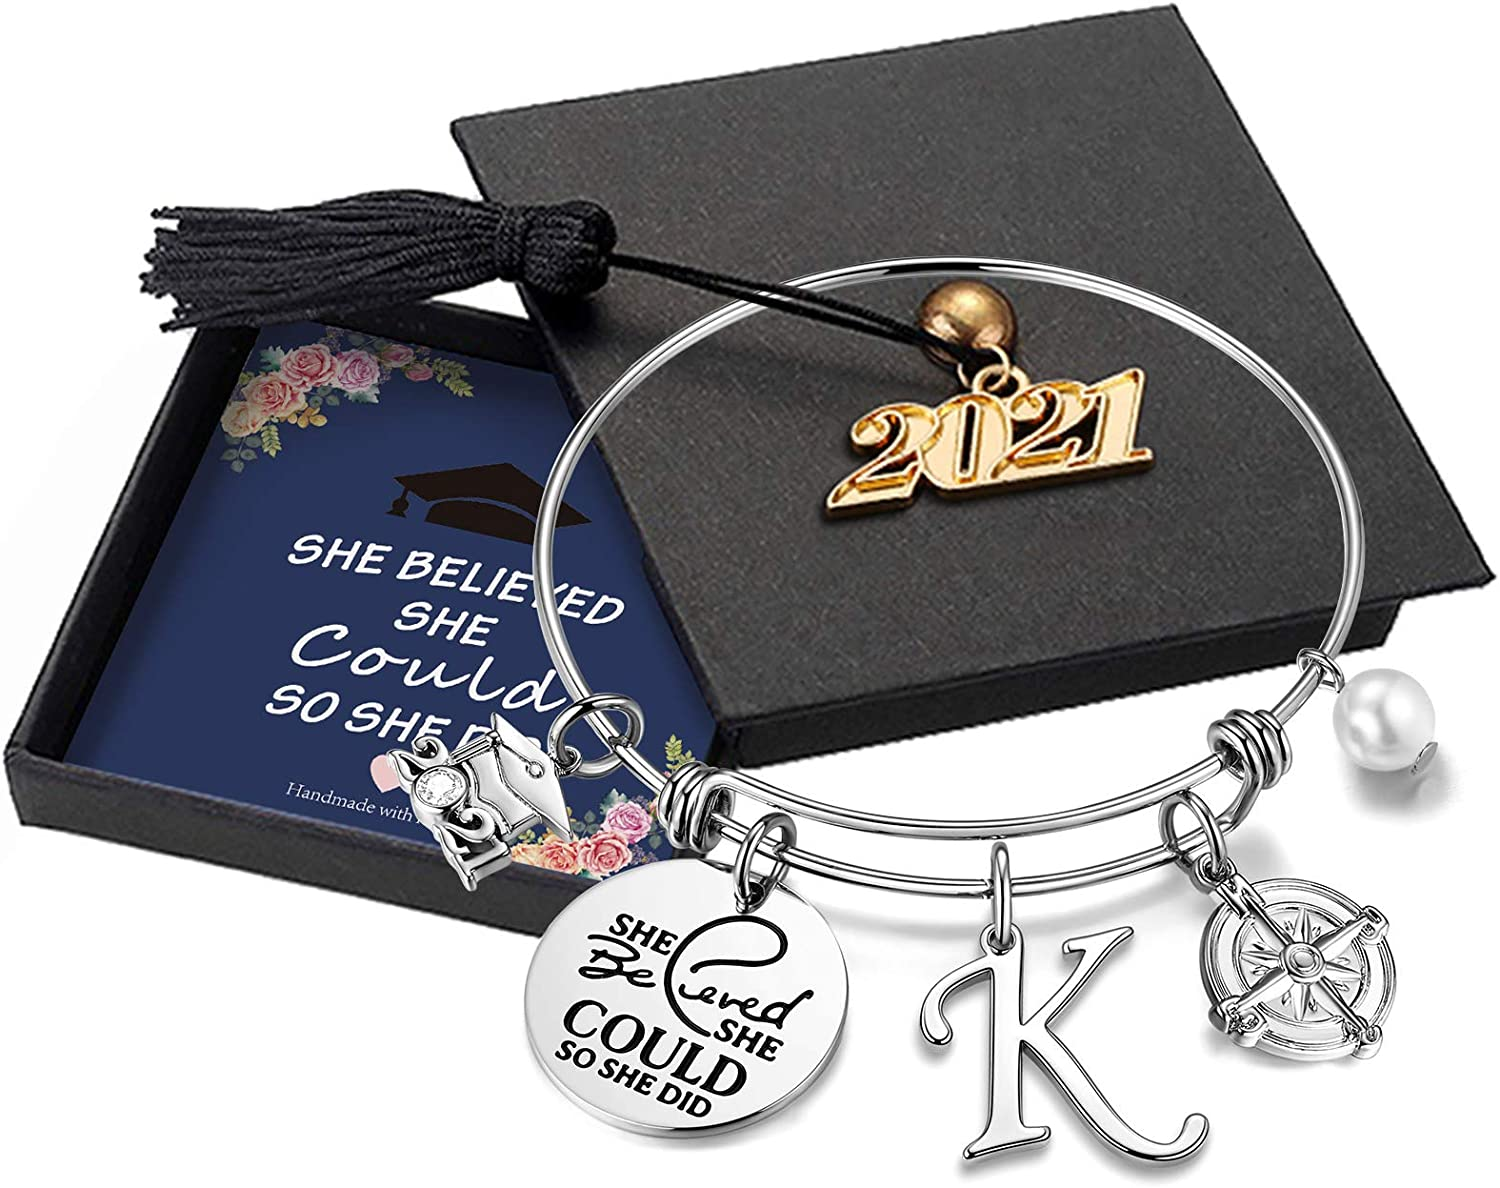 Hidepoo Inspirational Japan's largest assortment Graduation Inventory cleanup selling sale Gifts Believed Bracelet She Sh